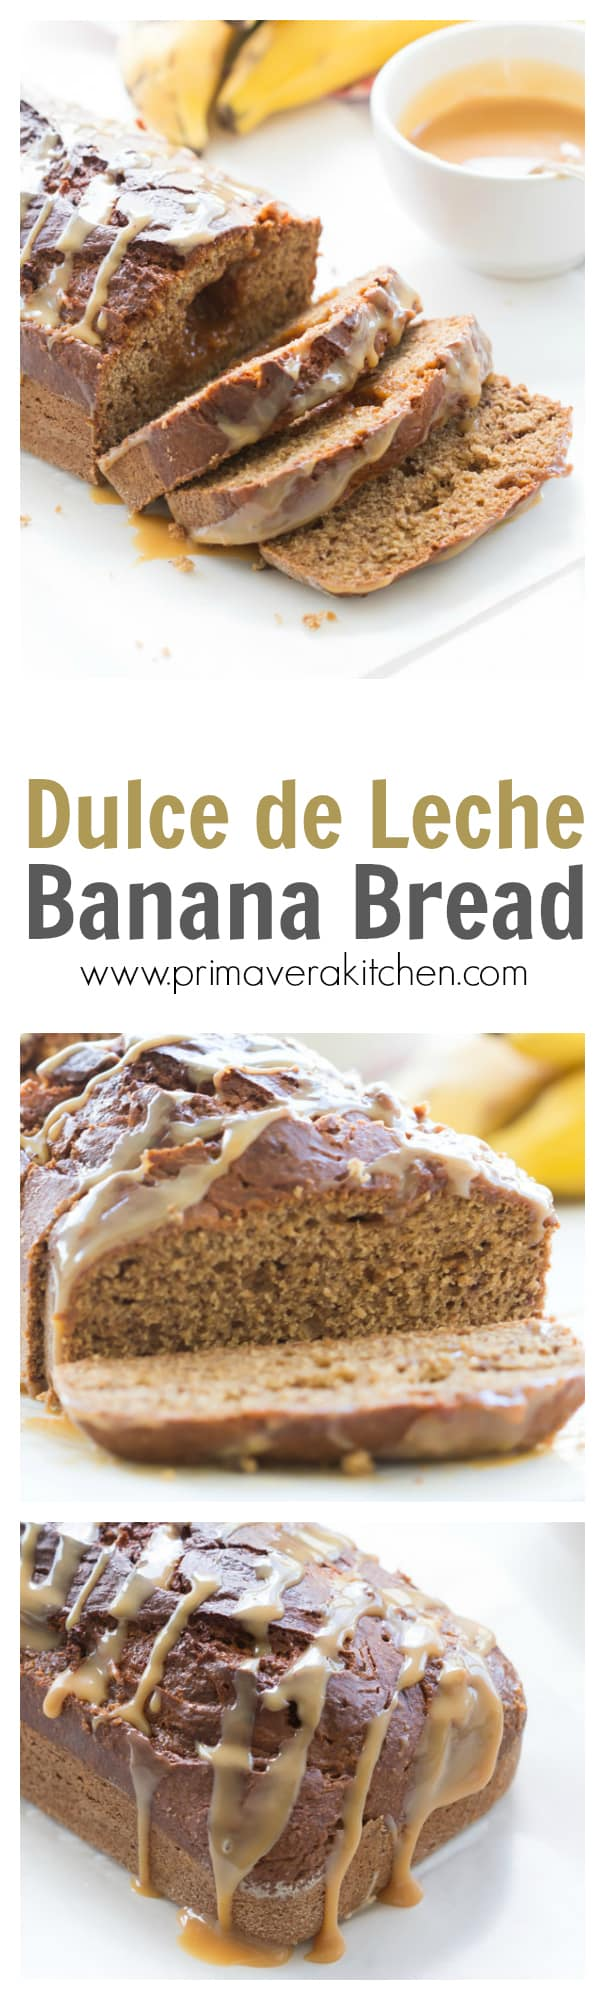 Dulce de Leche - The dulce de leche is swirled in a classic banana bread recipe, making it even more flavourful and irresistible. This is an amazing recipe with only few ingredients!